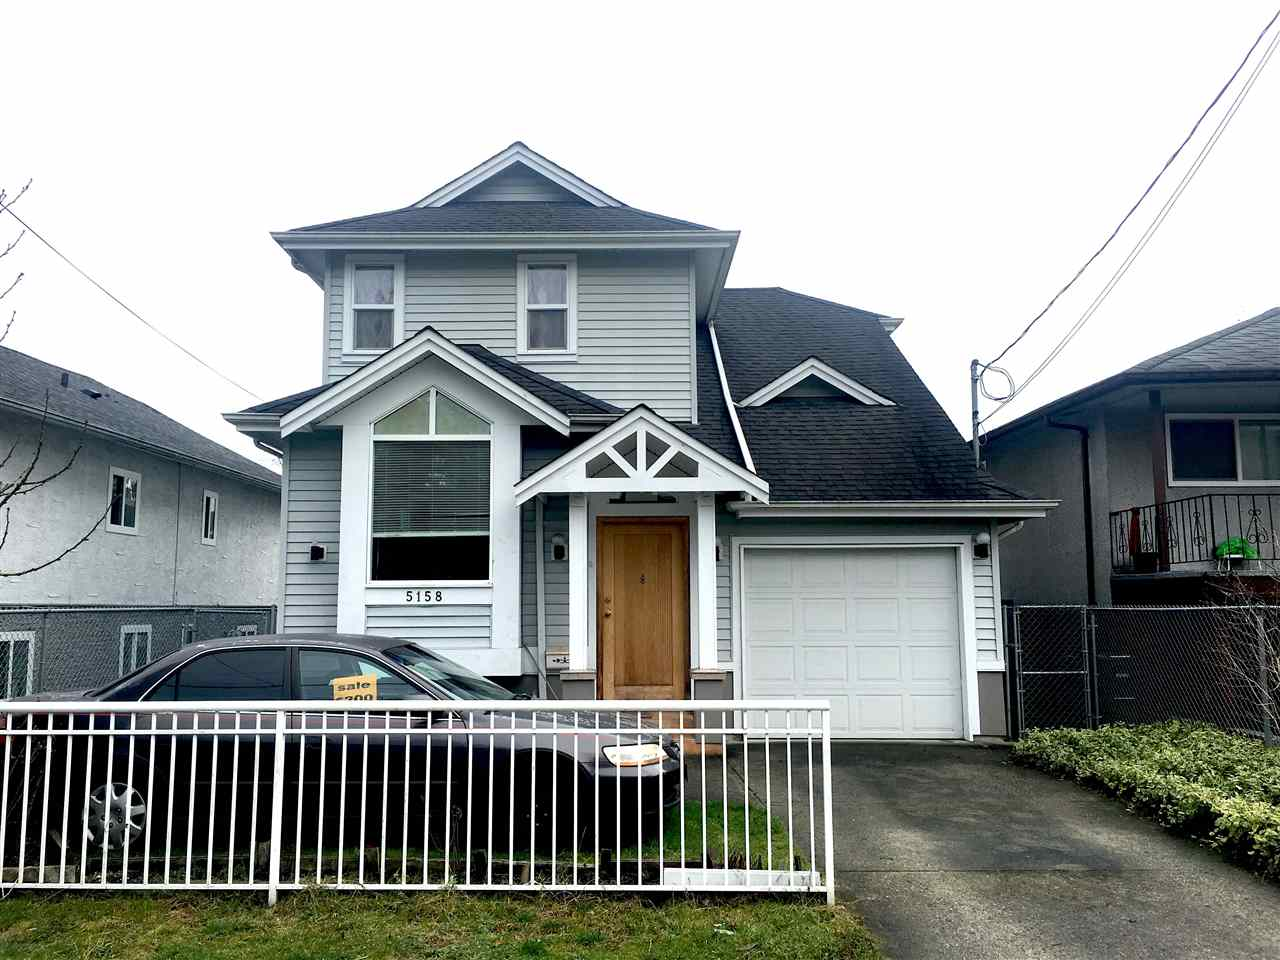 Only 18 years young well kept 3 Levels with 5 bedrooms, hardwood flooring, gas fireplace. Close to skytrain station, schools, and Kingsway shopping. Property good for development or land assembly, RT-11 zoning in the Norquay Village neighbourhood. Measurements approx., buyer to verify.